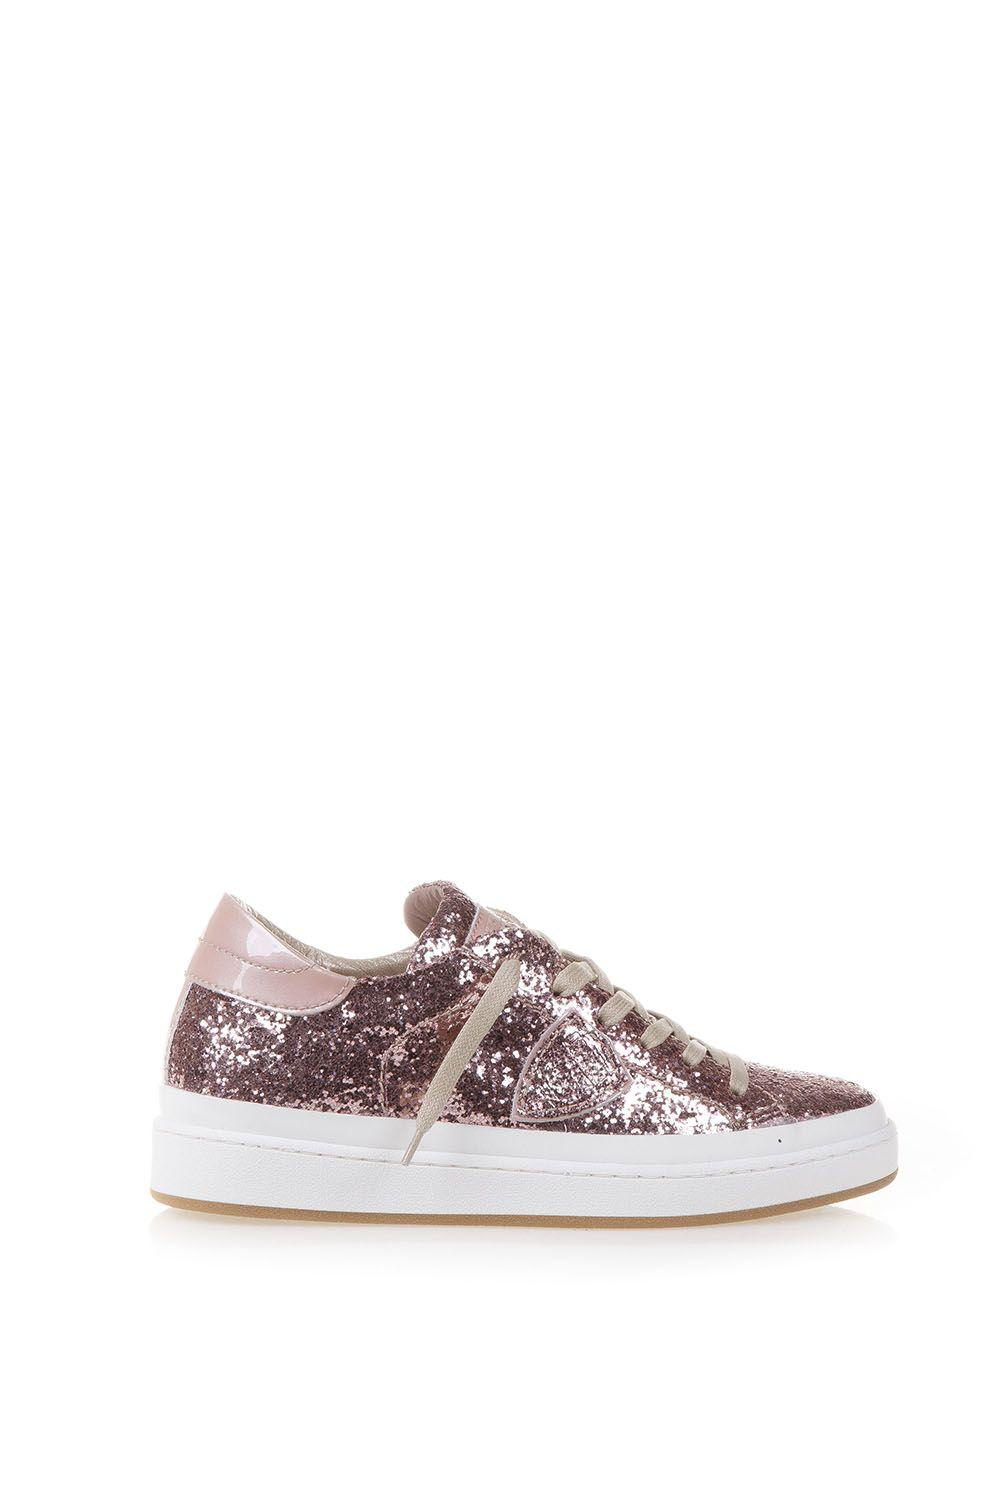 Philippe Model Opera Glitter Leather Sneakers In Pink